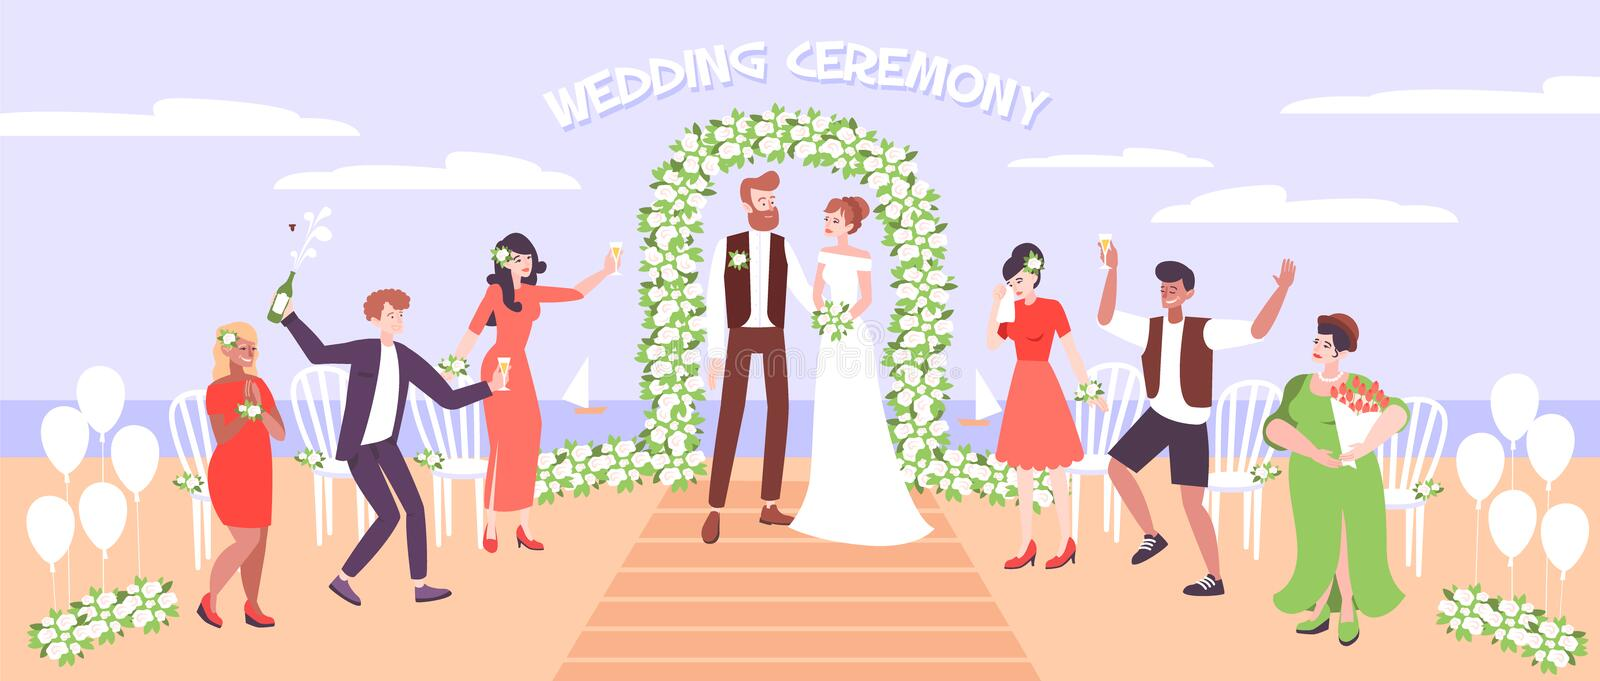 Wedding Ceremony On Sea Beach. With just married couple under wedding arc decorated with flowers vector illustration royalty free illustration